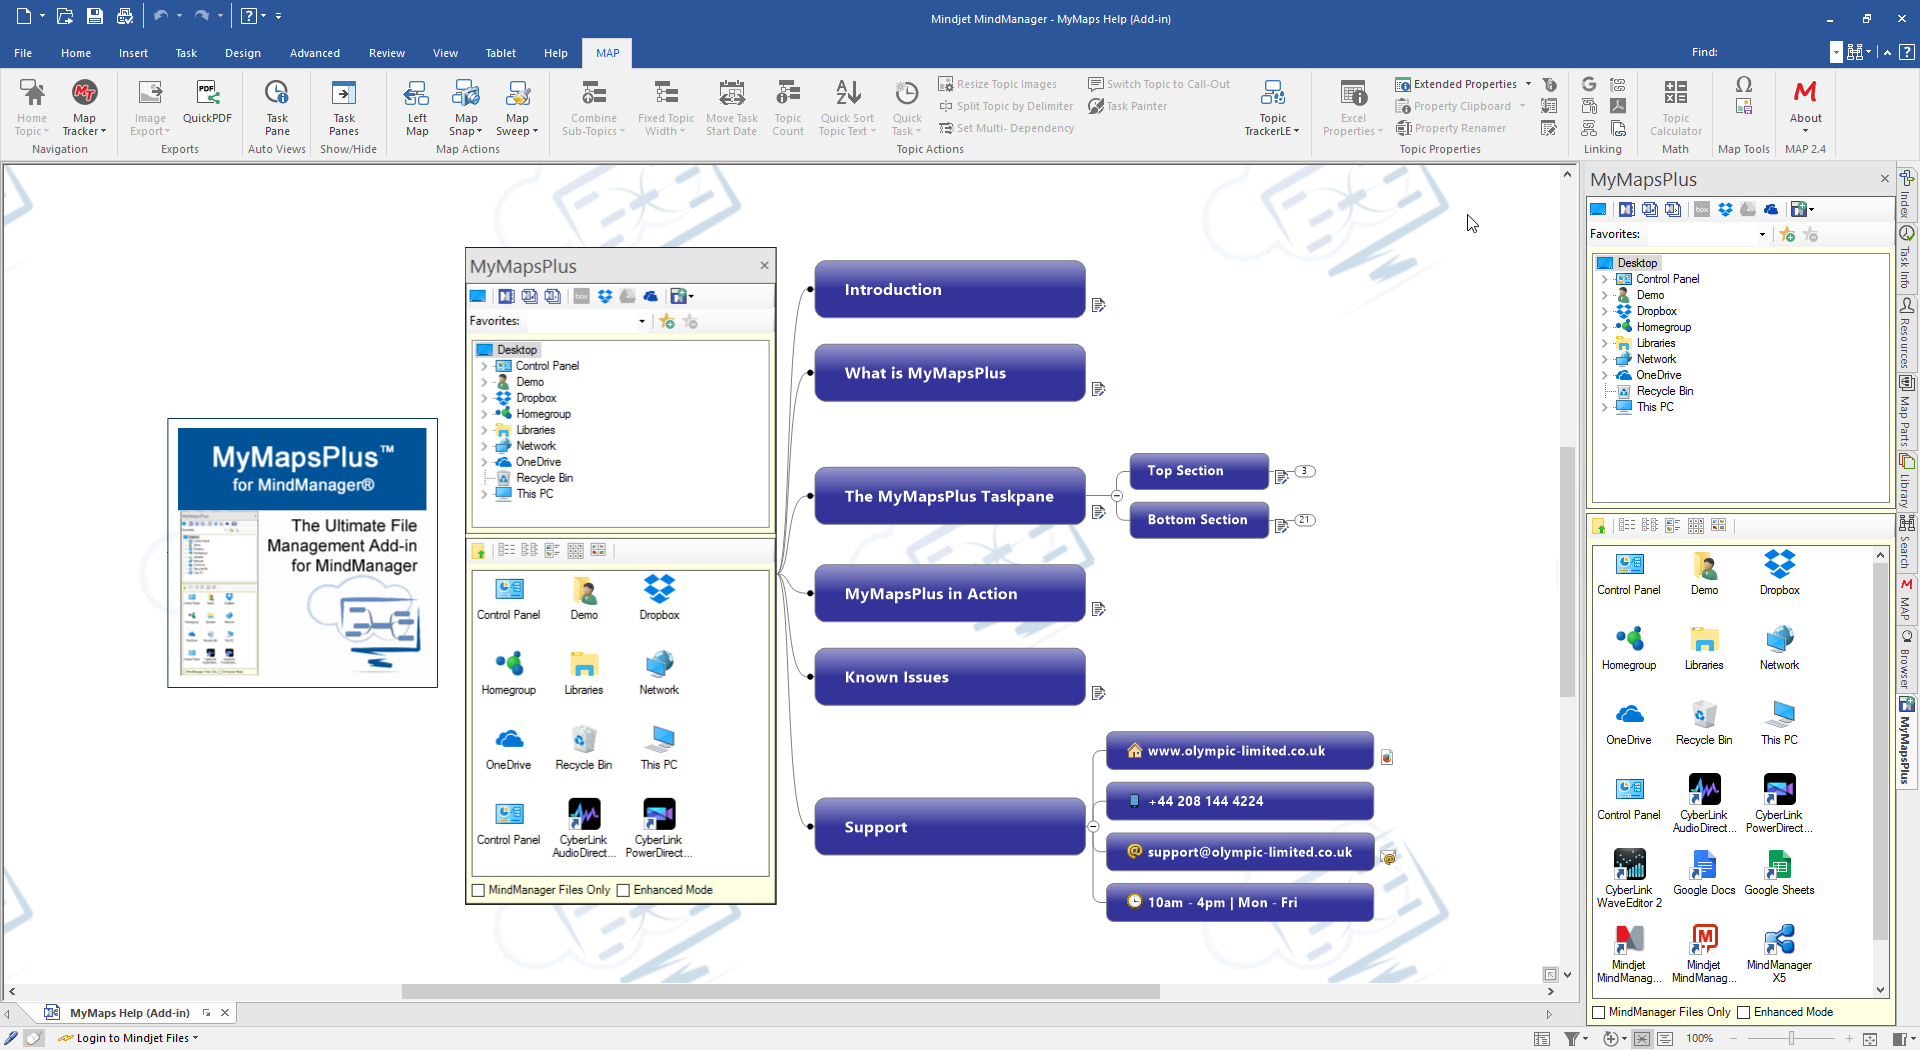 MyMapsPlus for MindManager